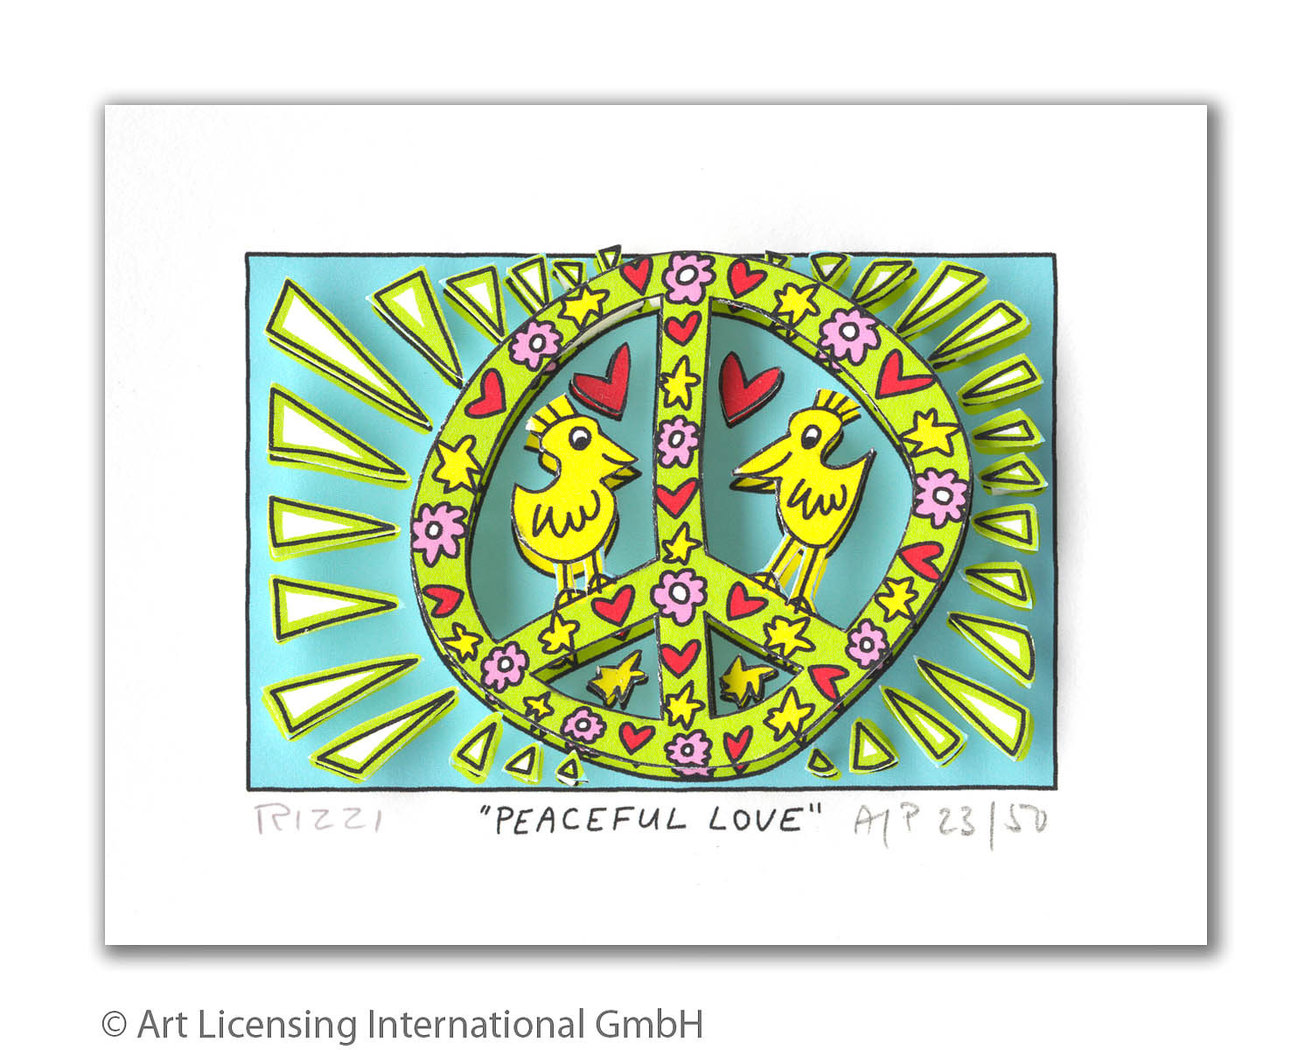 James Rizzi - PEACEFUL LOVE